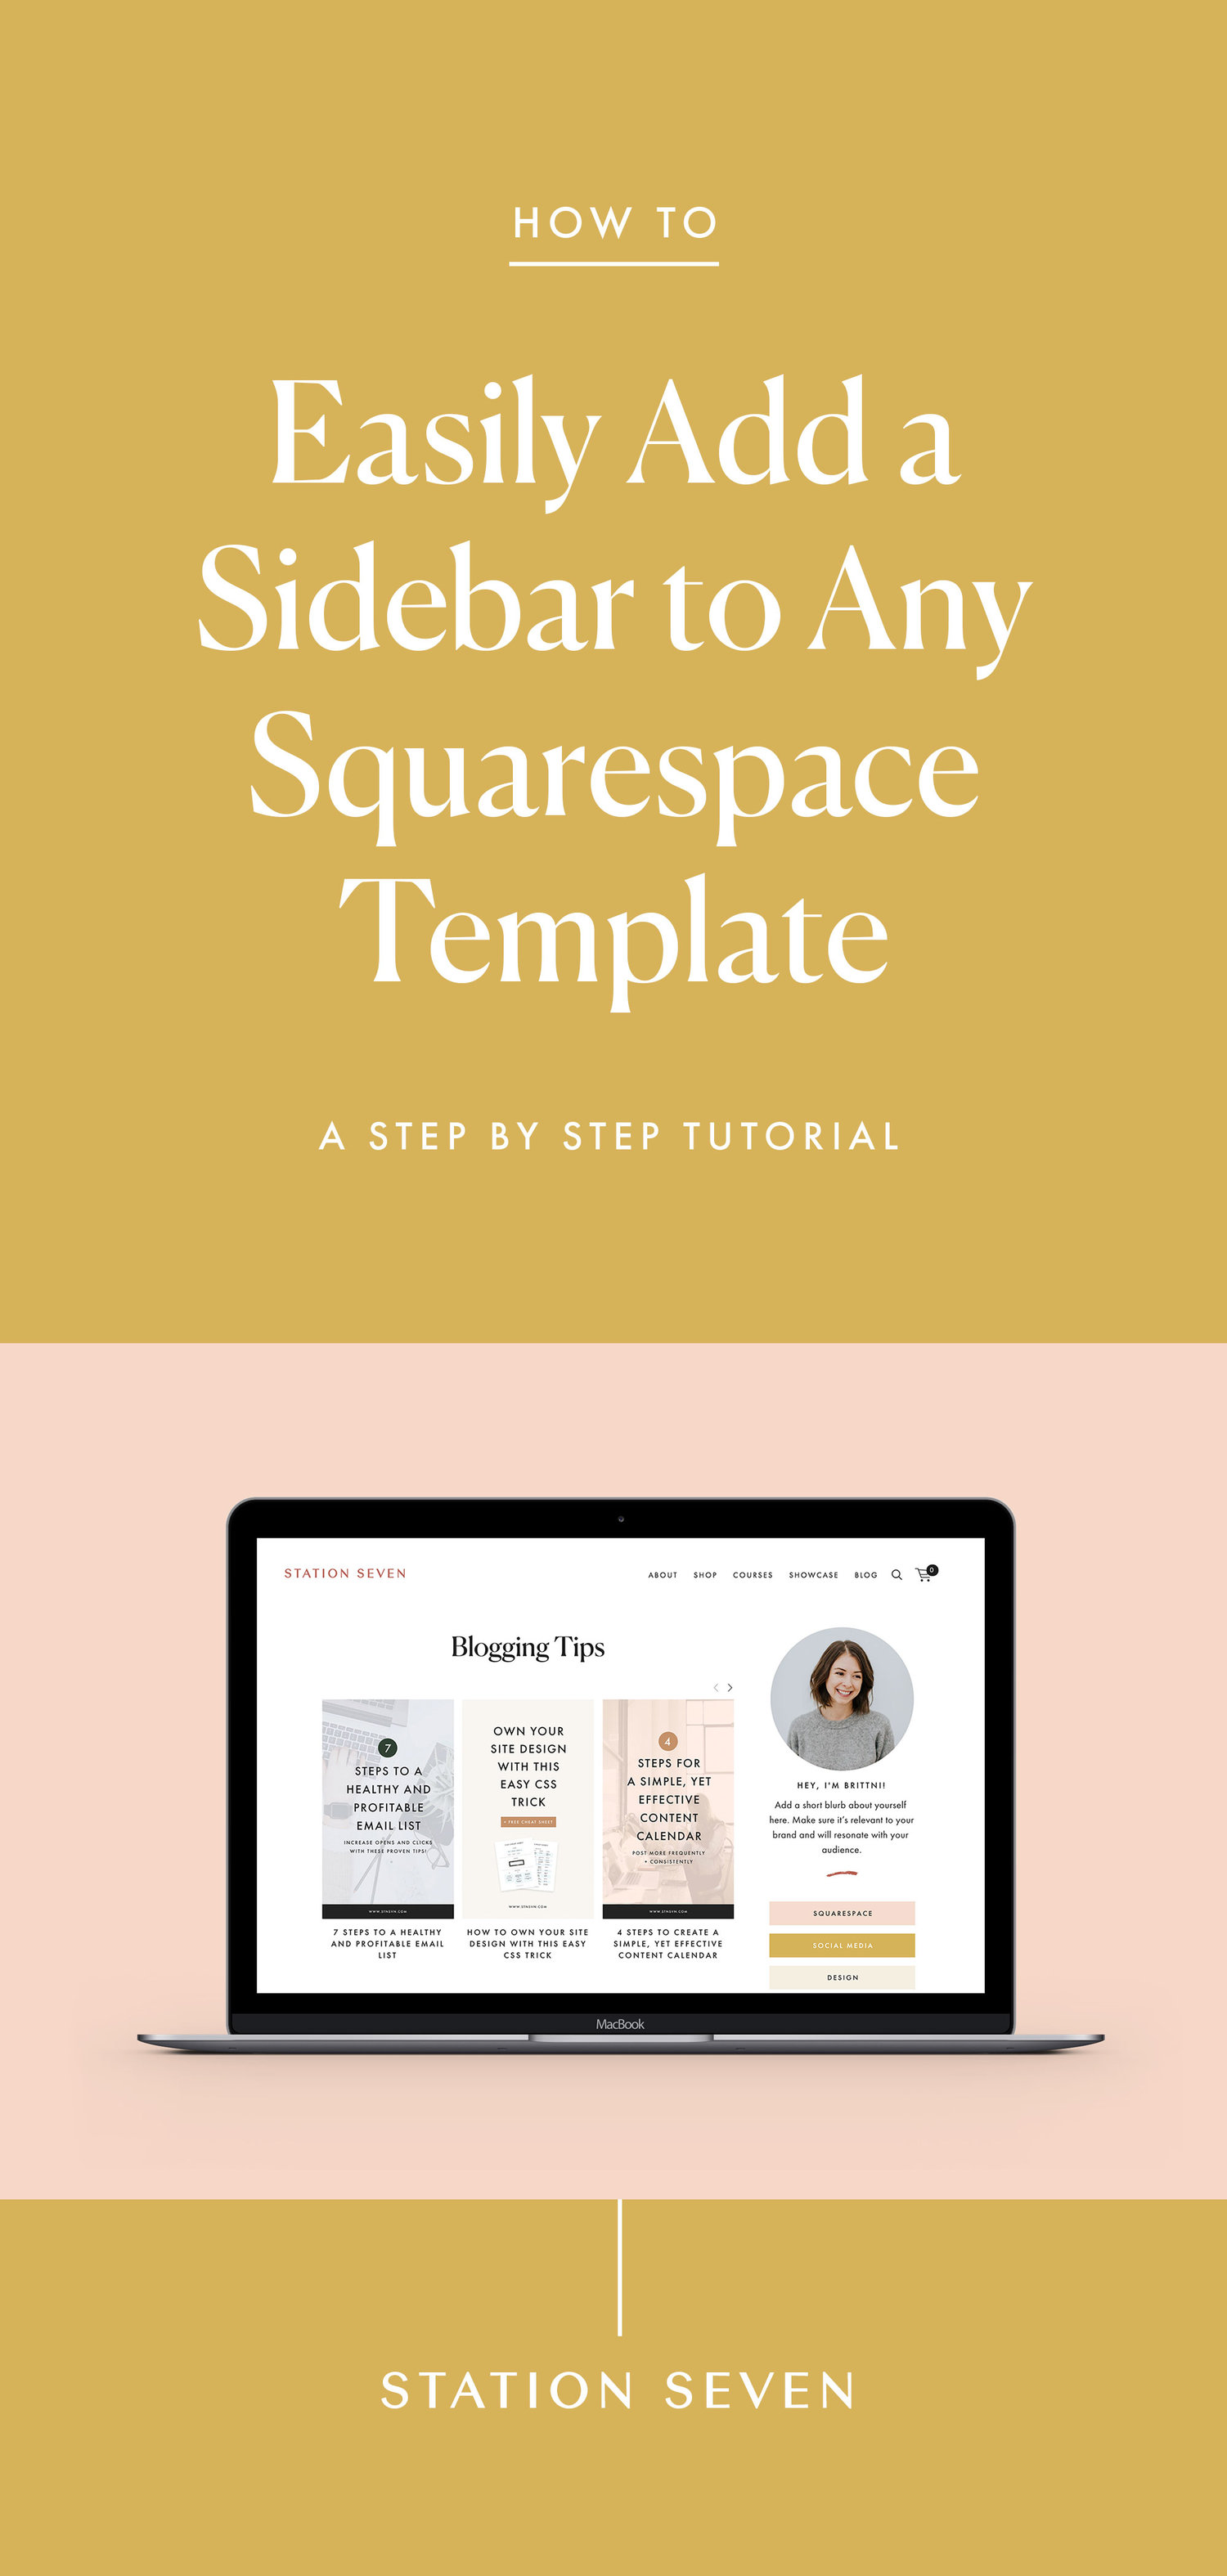 934c99cc9861 How to Easily Add a Sidebar to Any Squarespace Site — Station Seven:  Squarespace Templates, WordPress Themes, and Free Resources for Creative  Entrepreneurs